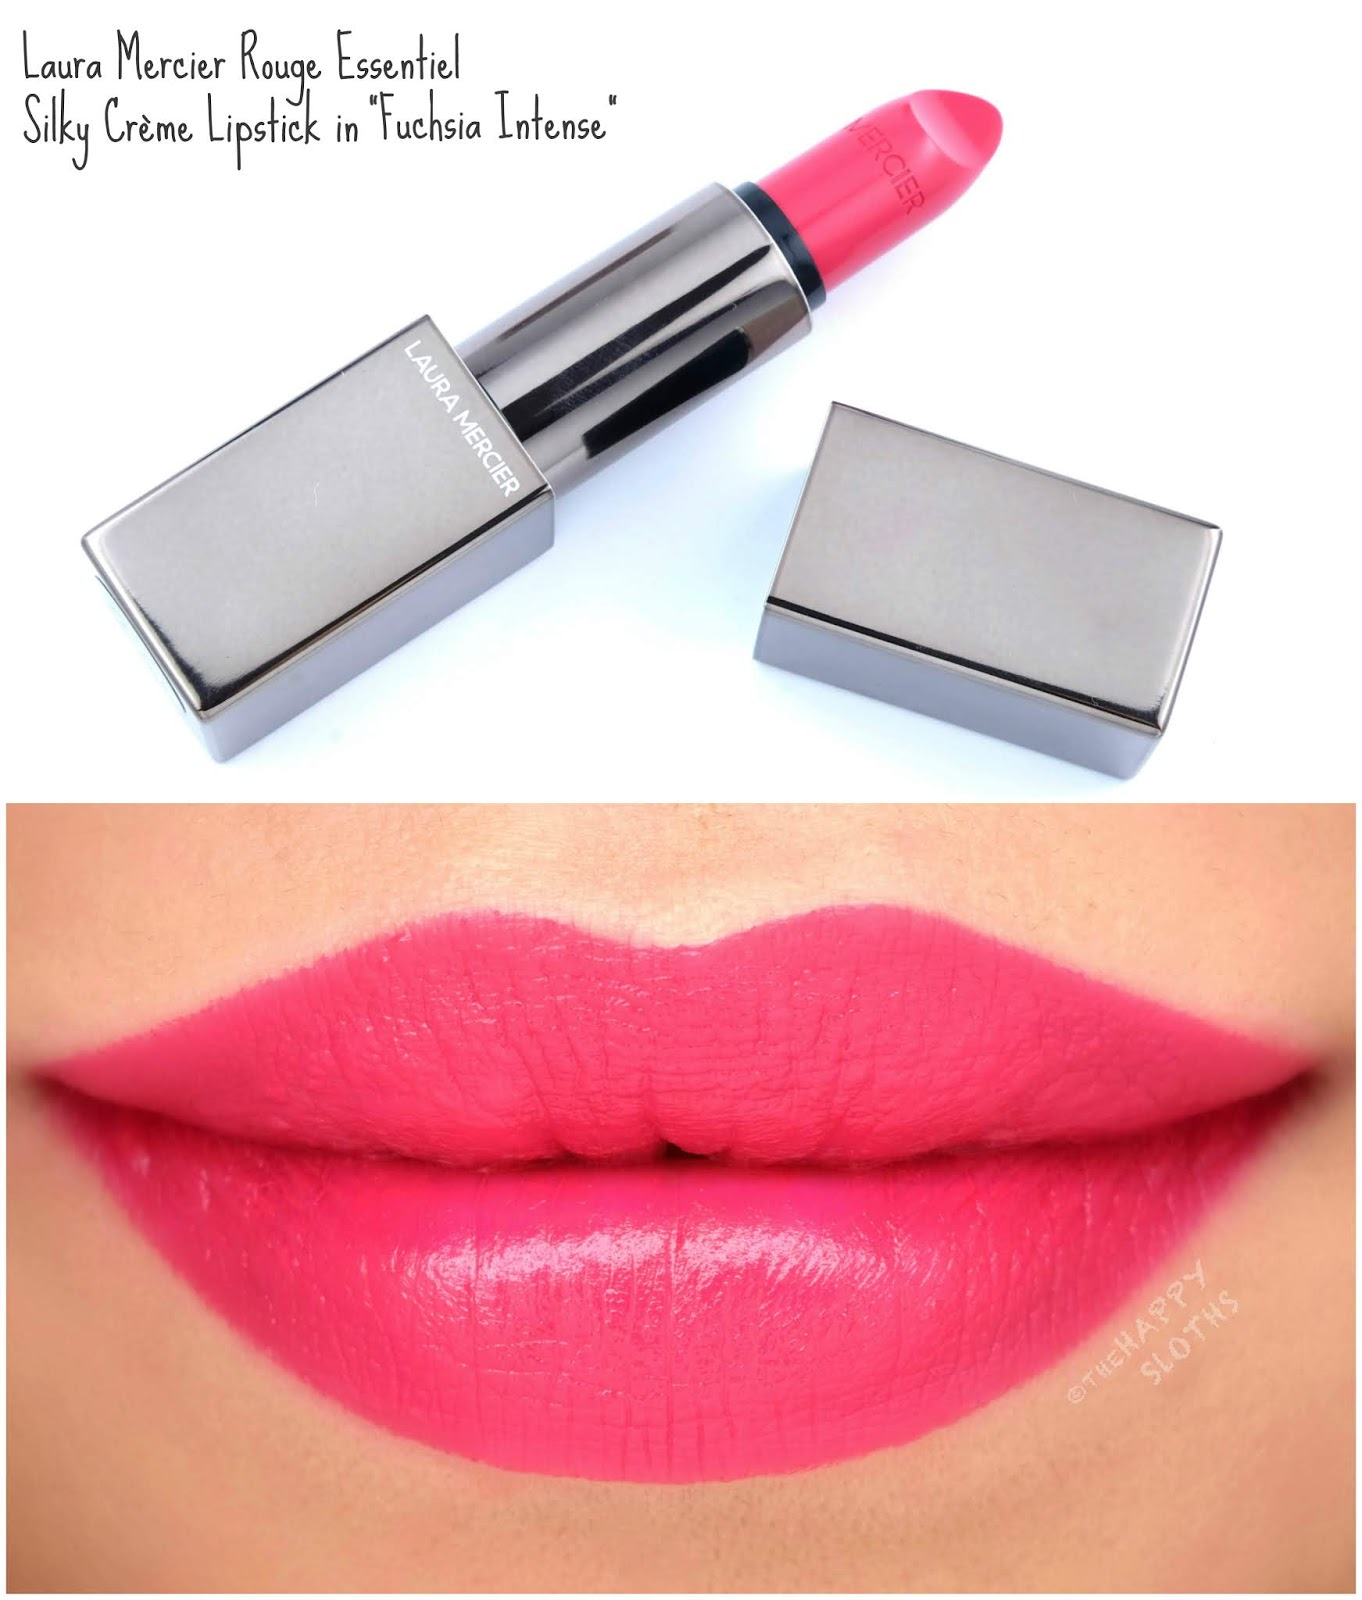 "Laura Mercier | Rouge Essentiel Silky Crème Lipstick in ""Fuchsia Intense"": Review and Swatches"